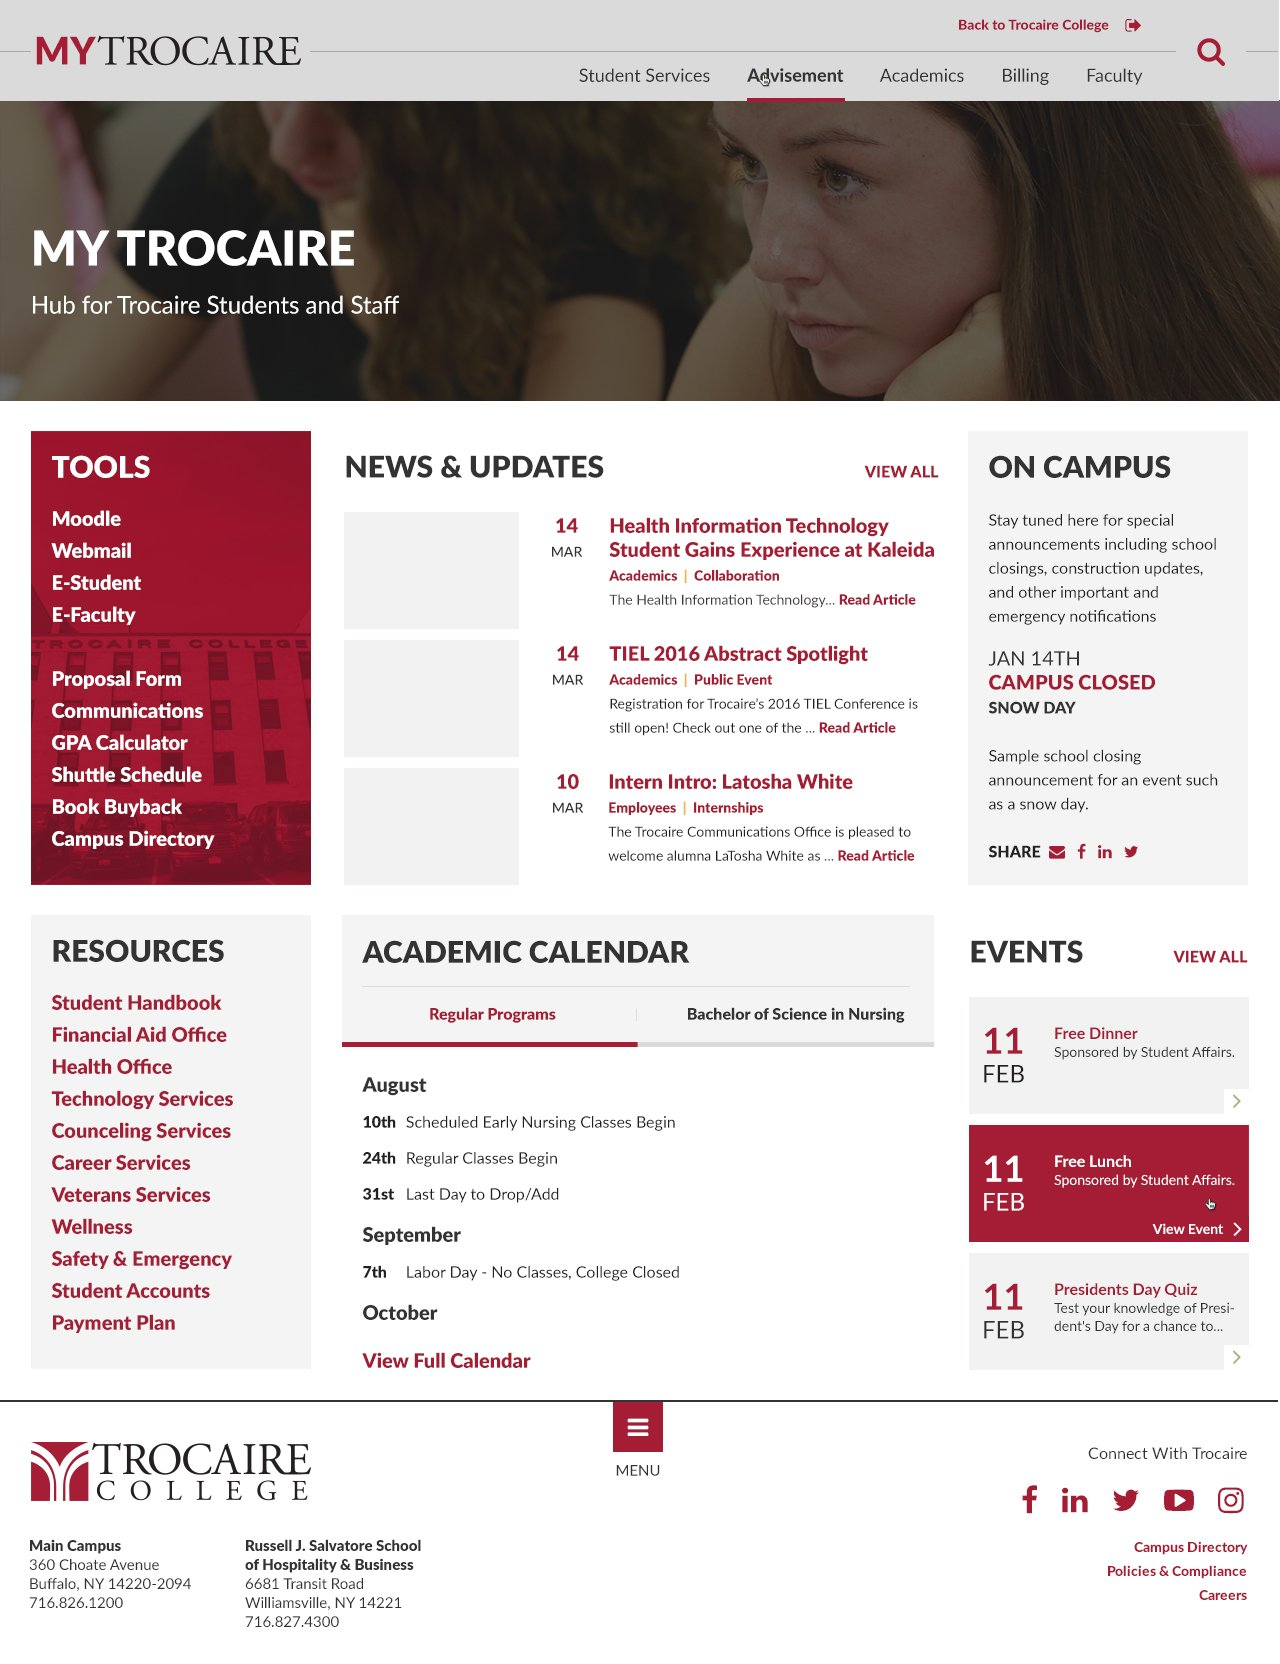 Trocaire College About